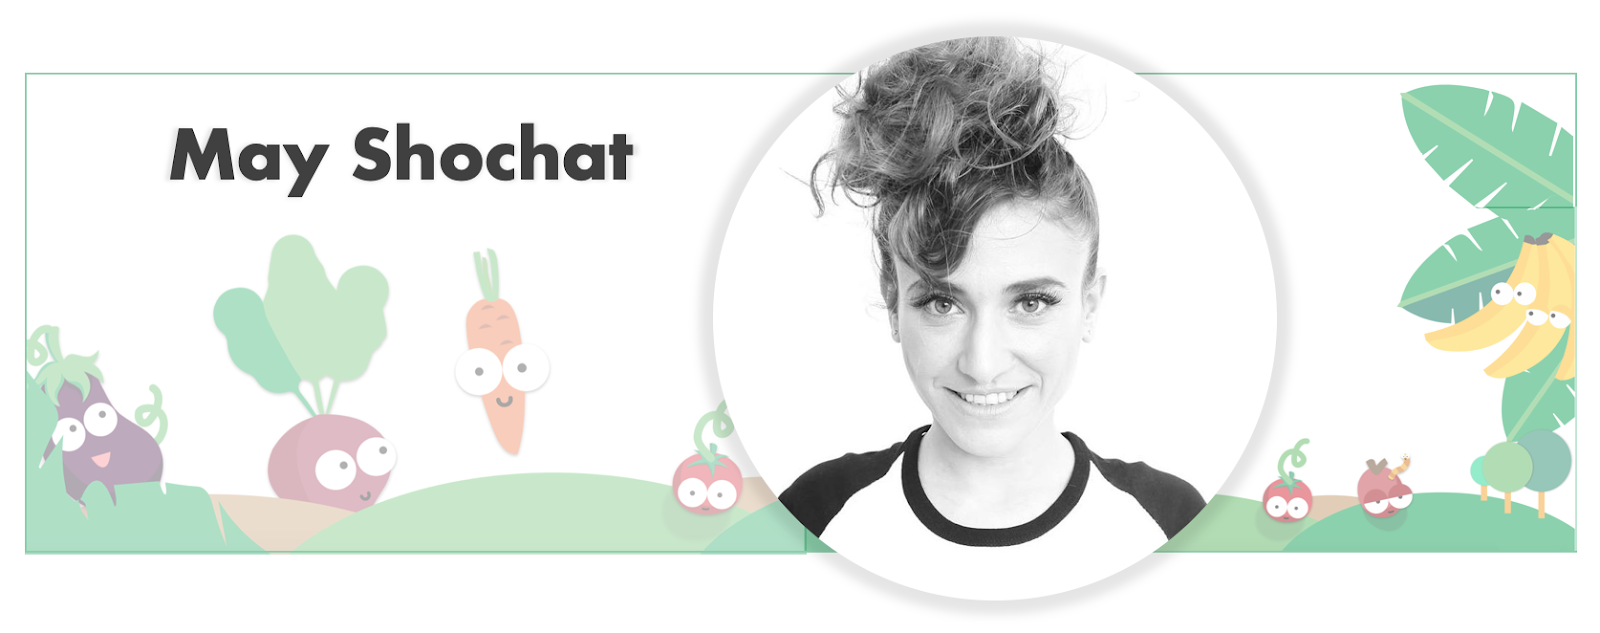 May Shochat - the mobile spoon